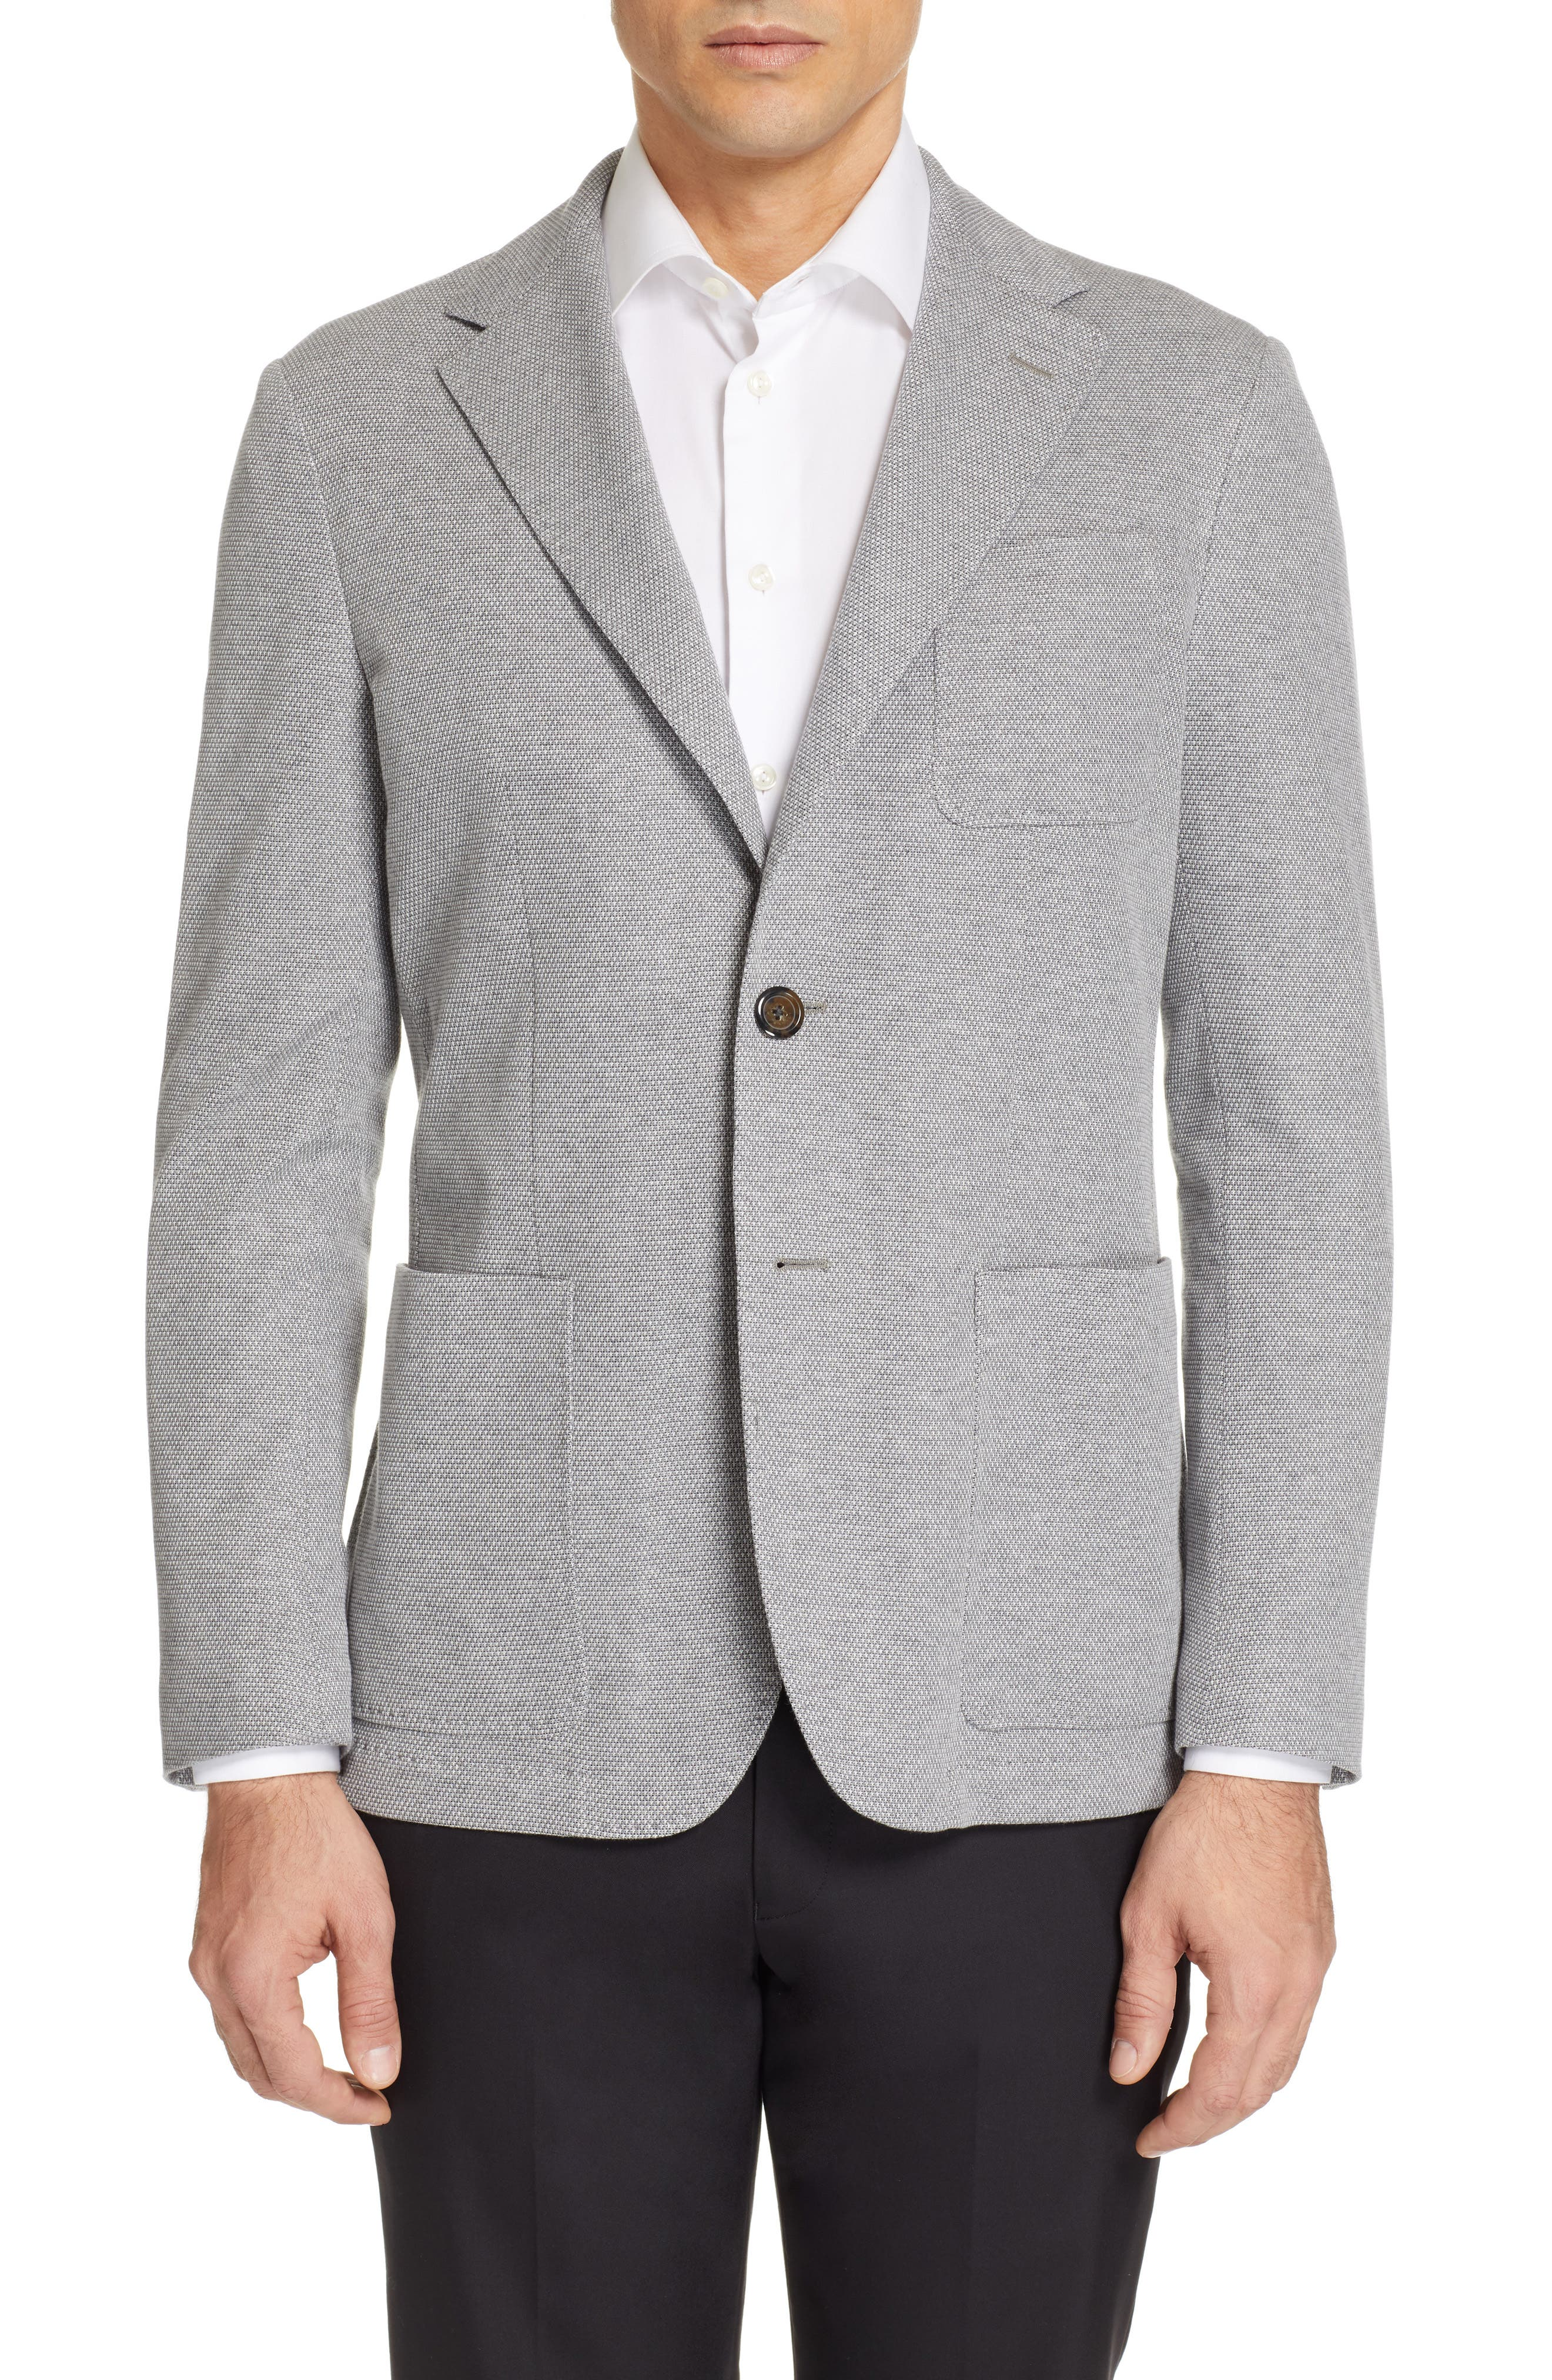 CANALI, Classic Fit Washed Sport Coat, Main thumbnail 1, color, LIGHT GREY